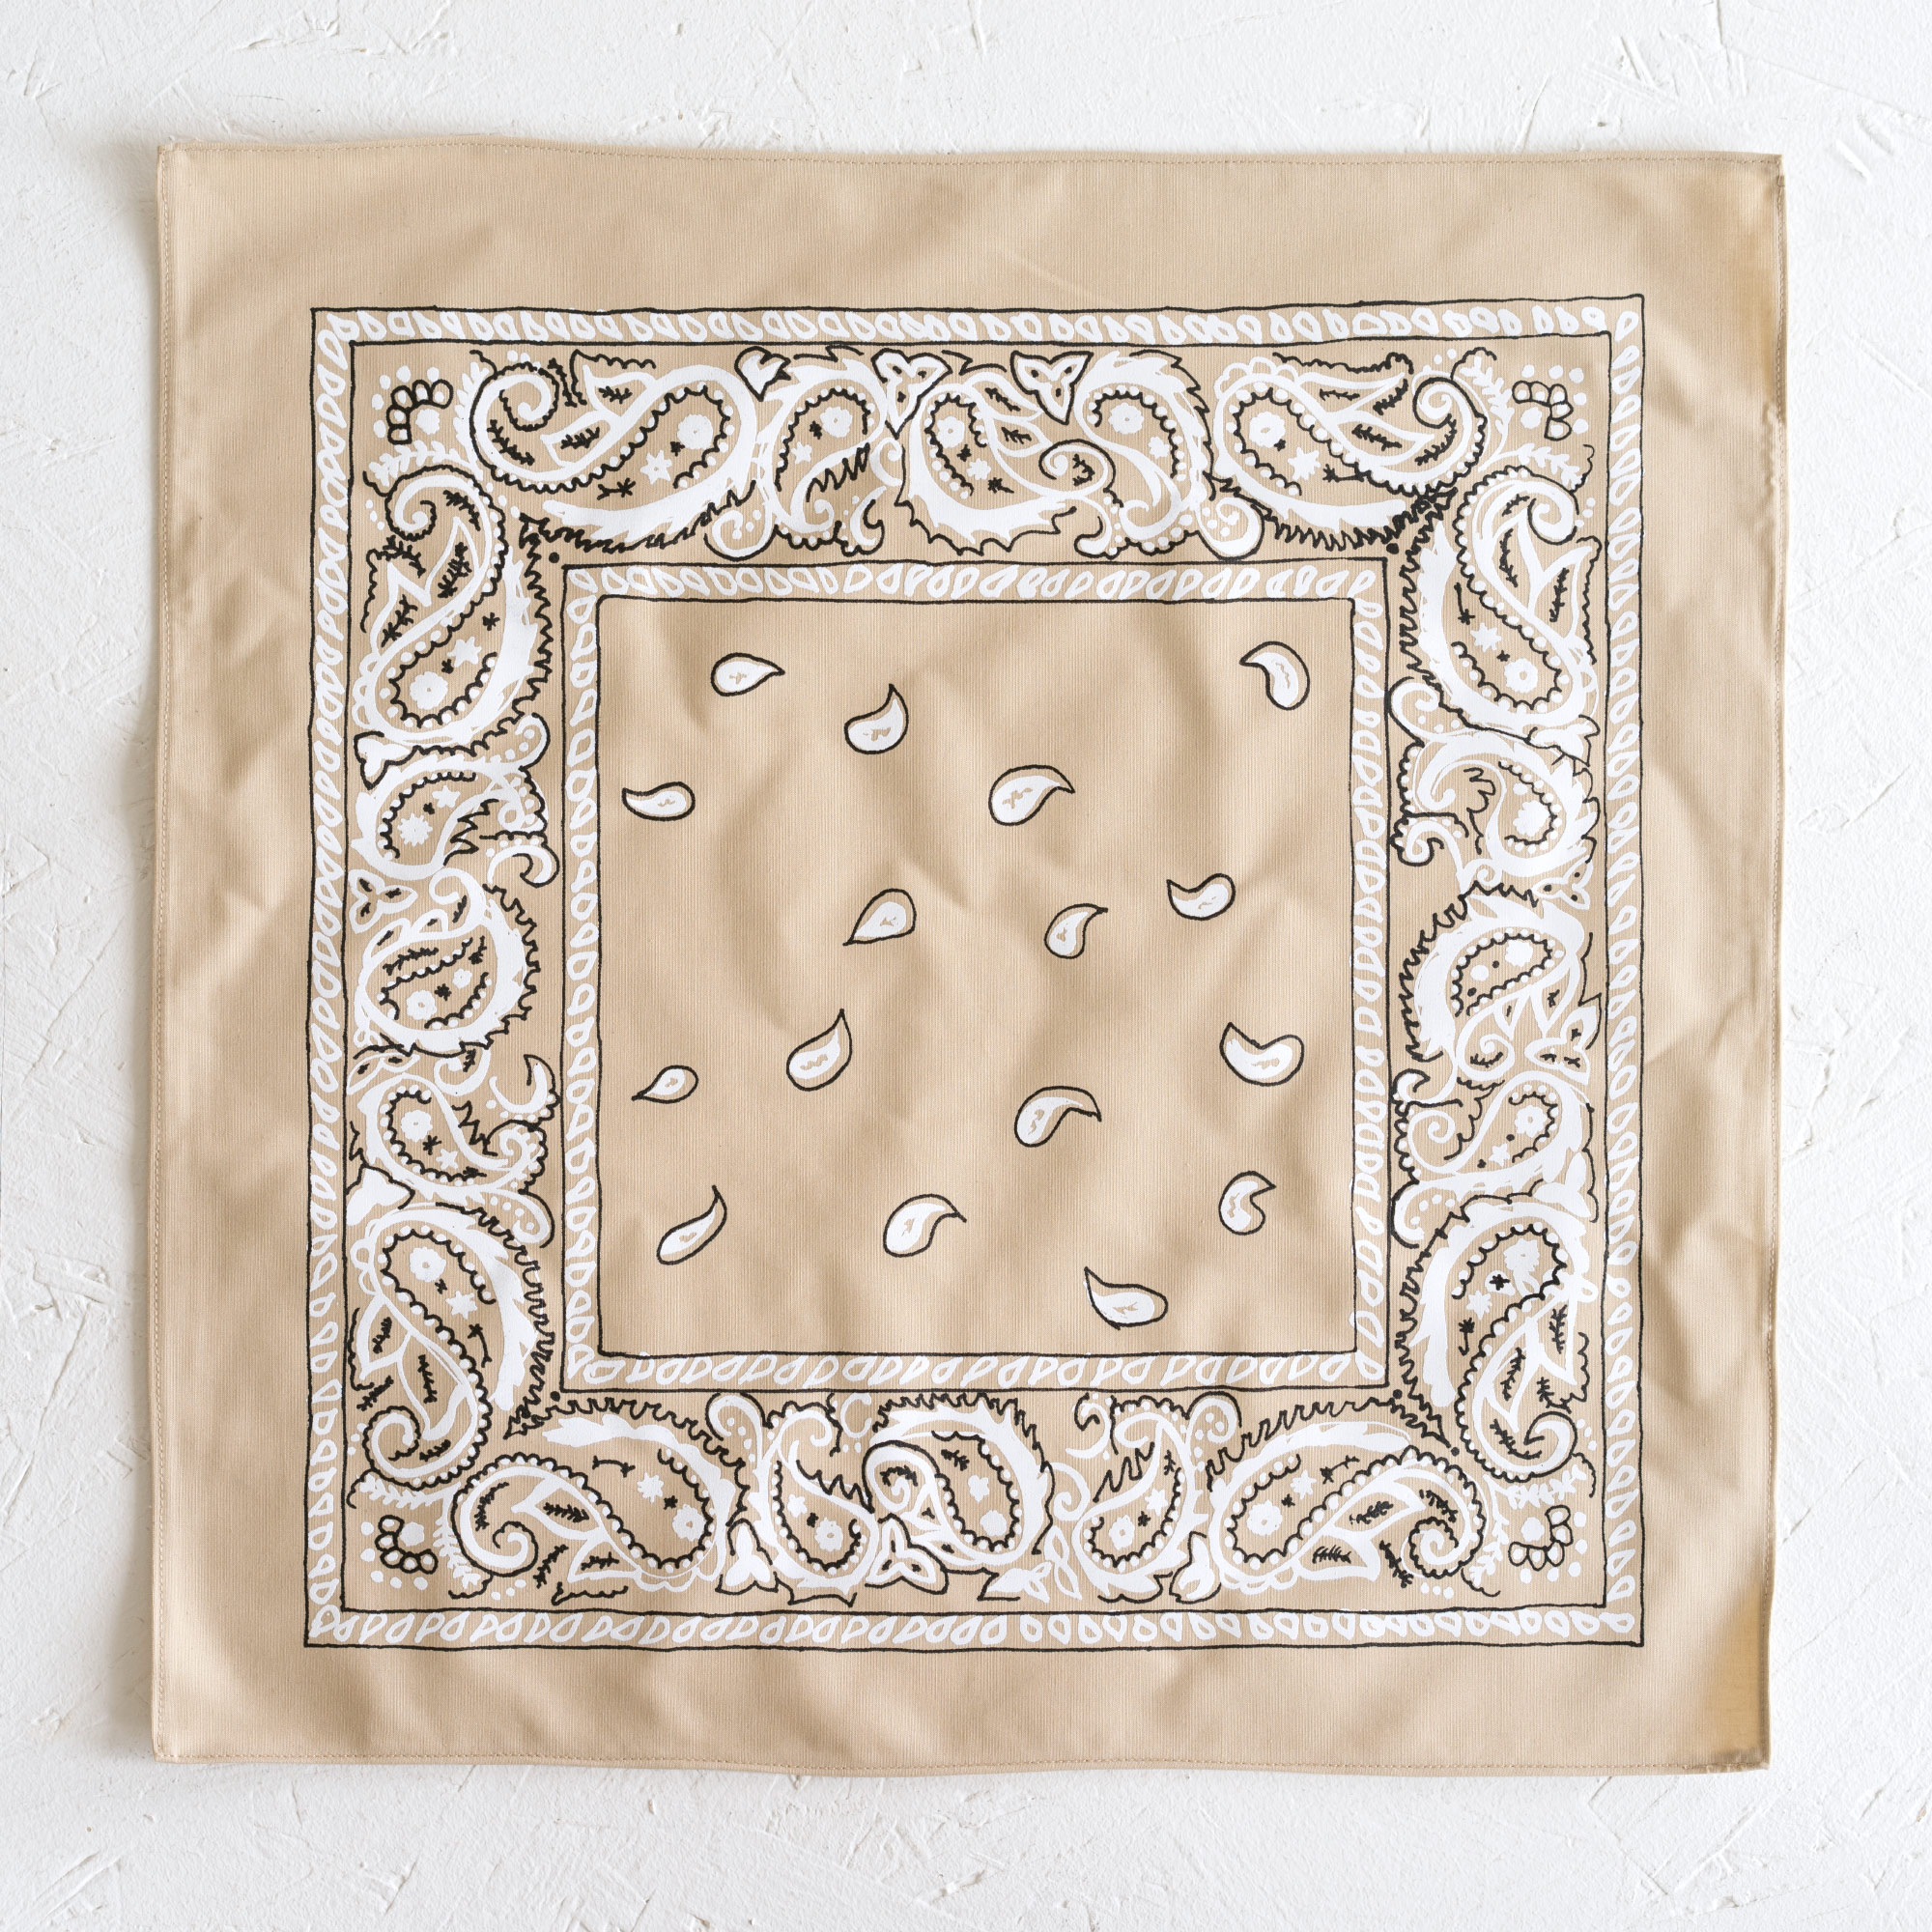 Nancy Davidson, *Hanky Code* (Beige), 2016, Two color silkscreen on hand cut & sewn cotton, 17 x 17 inches (43.18 x 43.18 cm)